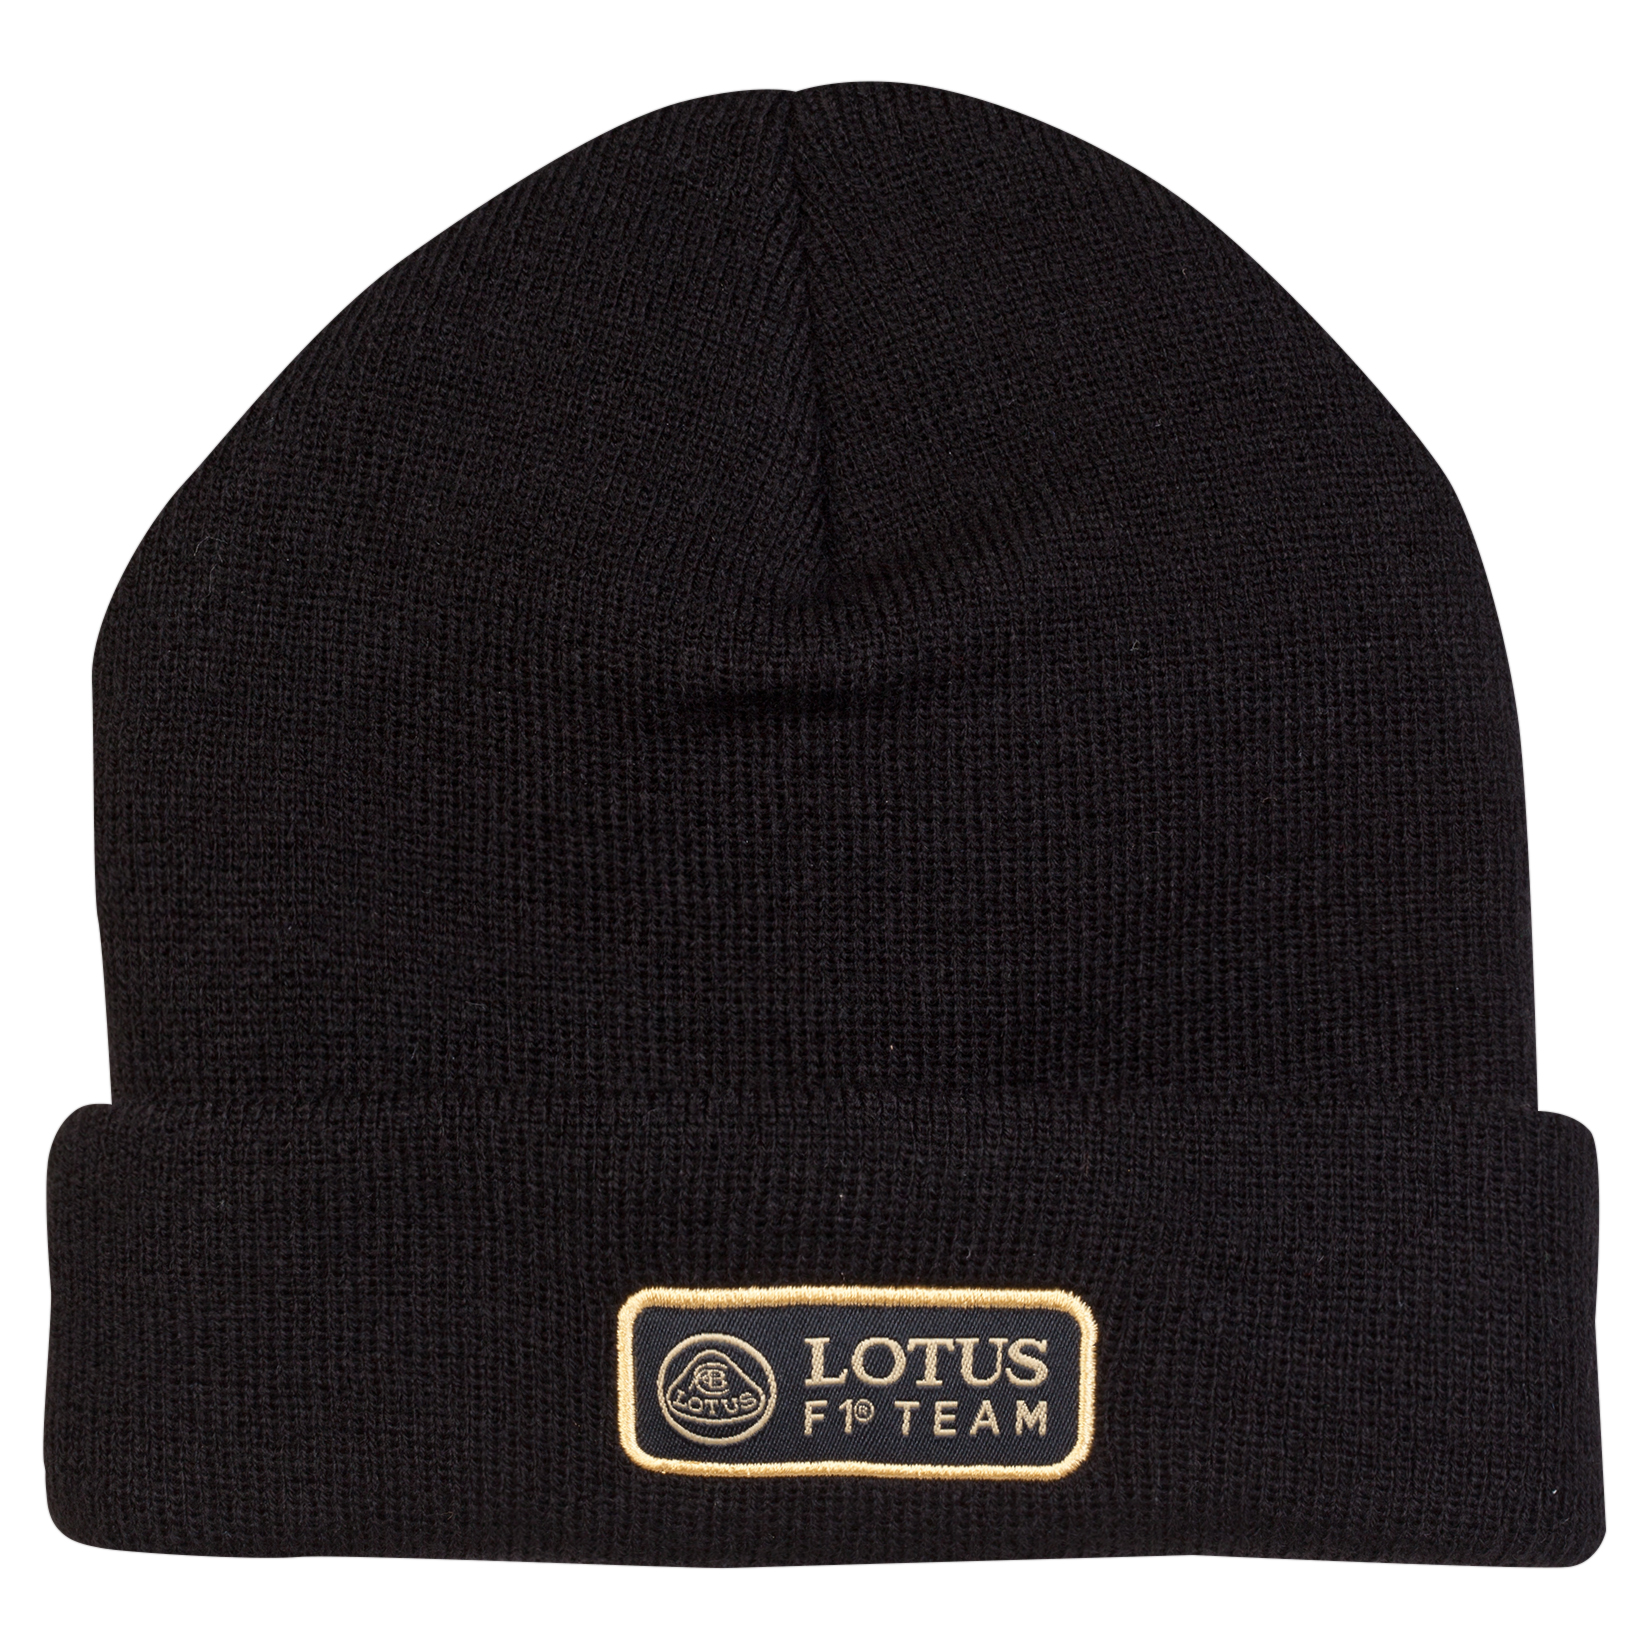 Lotus F1 Team Replica Beanie Hat